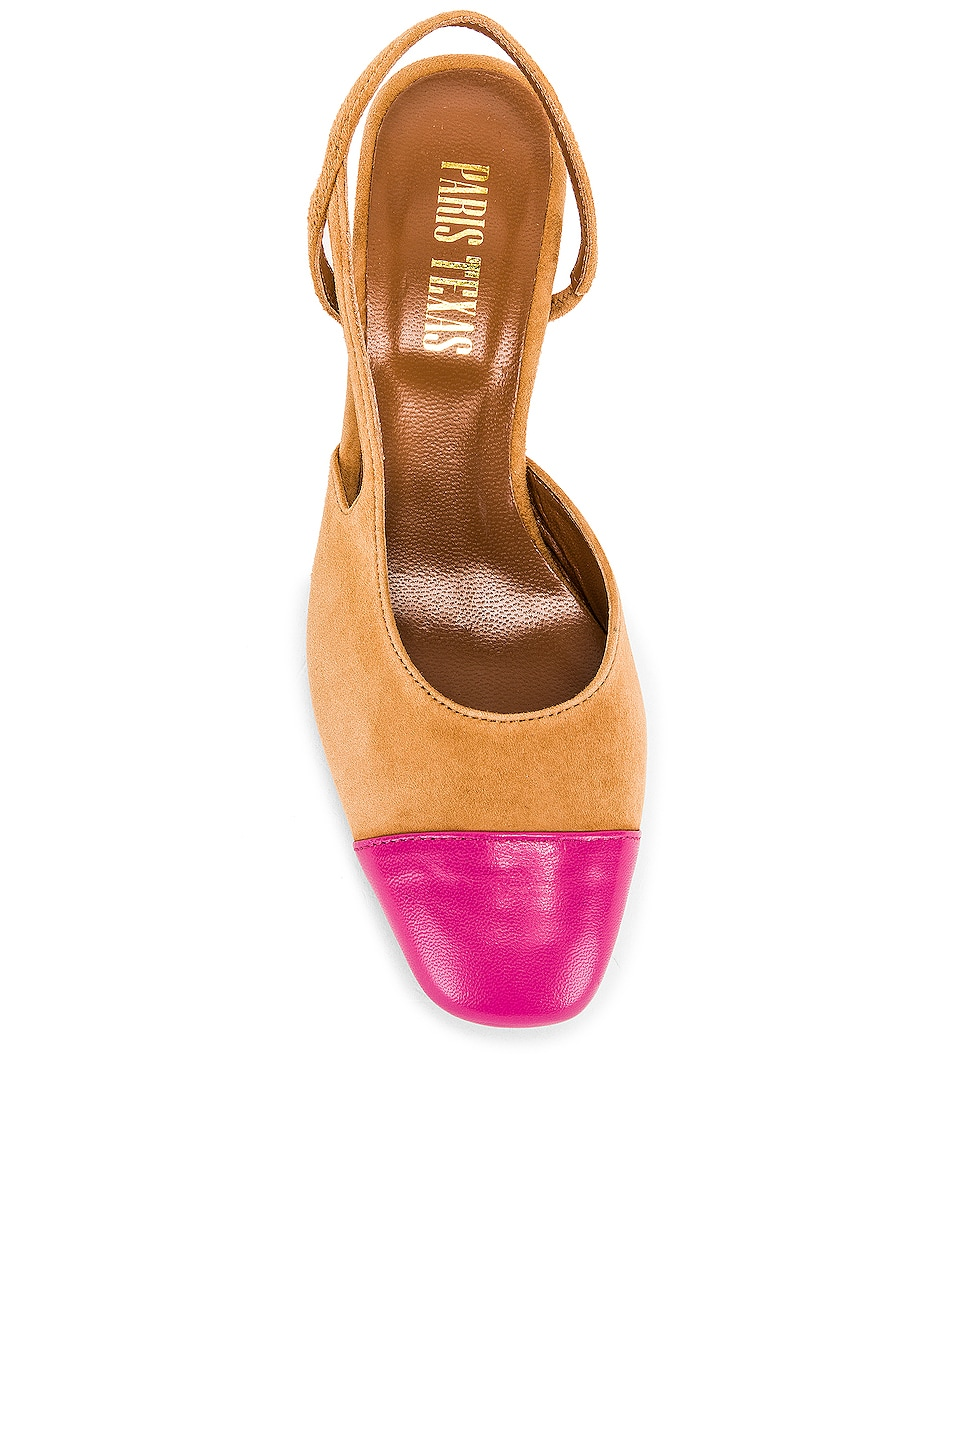 Image 4 of Paris Texas Suede Sling Back in Tan & Pink